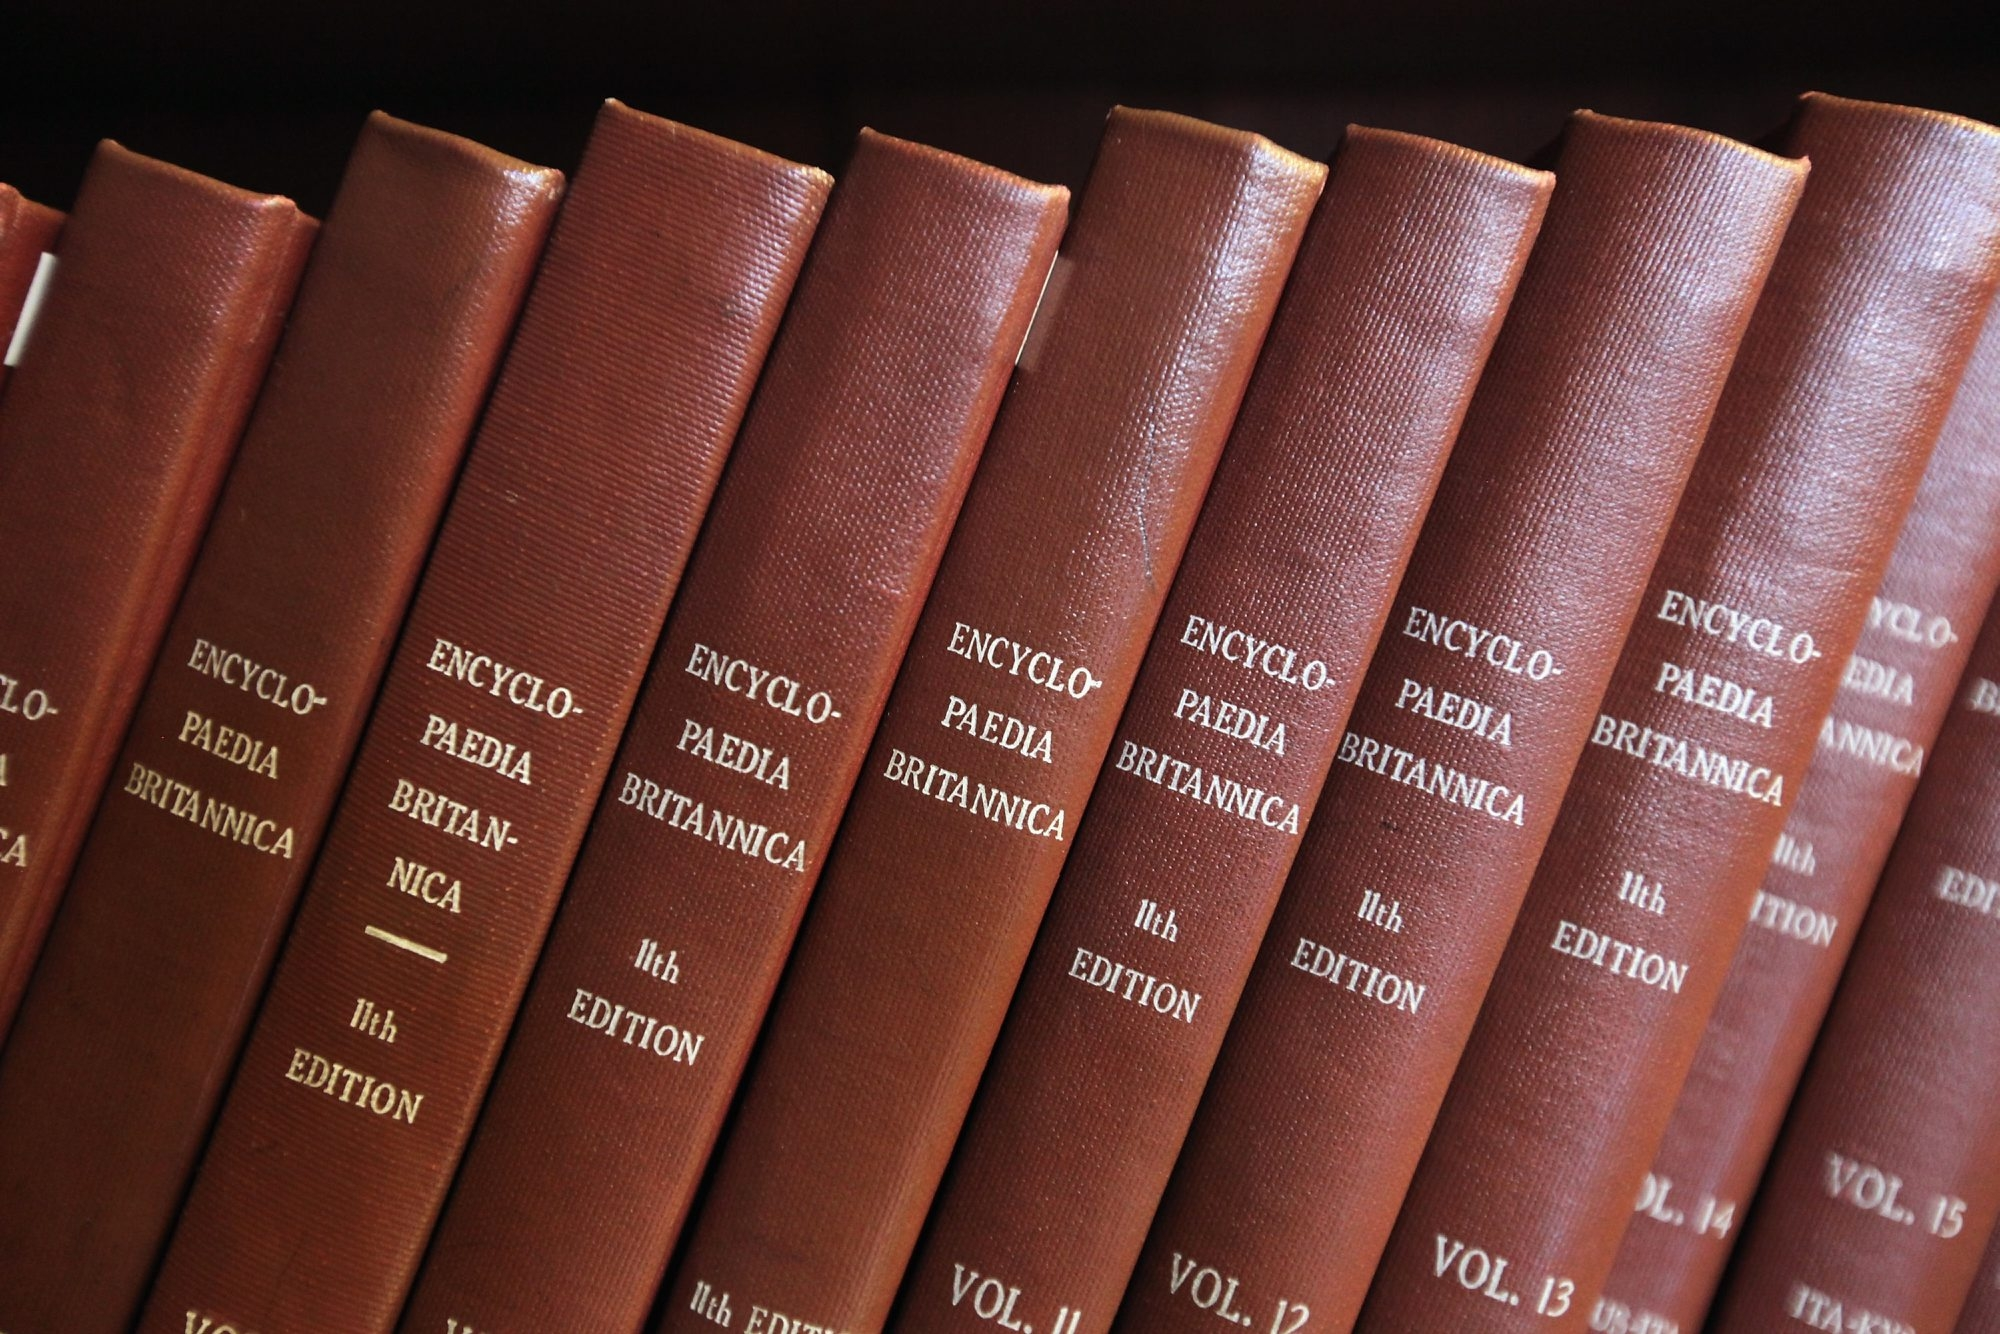 Encyclopedia Britannica editions are seen at the New York Public Library. In his new book, Denis Broyles traces the evolution of the encyclopedia from its early days as an offshoot of the Times of London in the early 20th century.